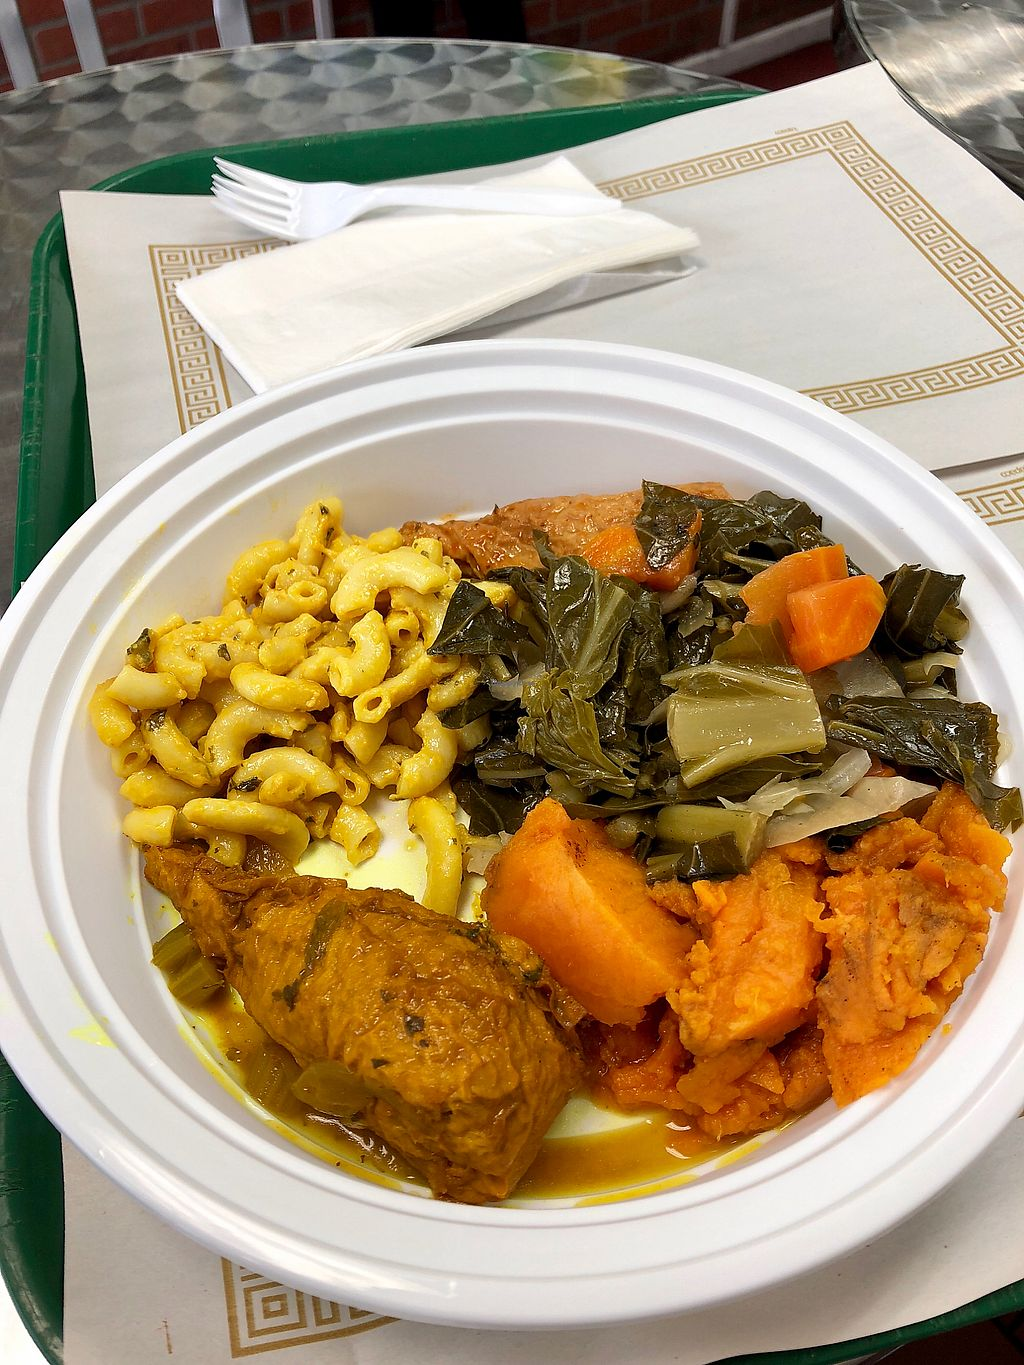 "Photo of Uptown Veg  by <a href=""/members/profile/vegbenzboy"">vegbenzboy</a> <br/>Veganlicious <br/> October 26, 2017  - <a href='/contact/abuse/image/2289/319007'>Report</a>"